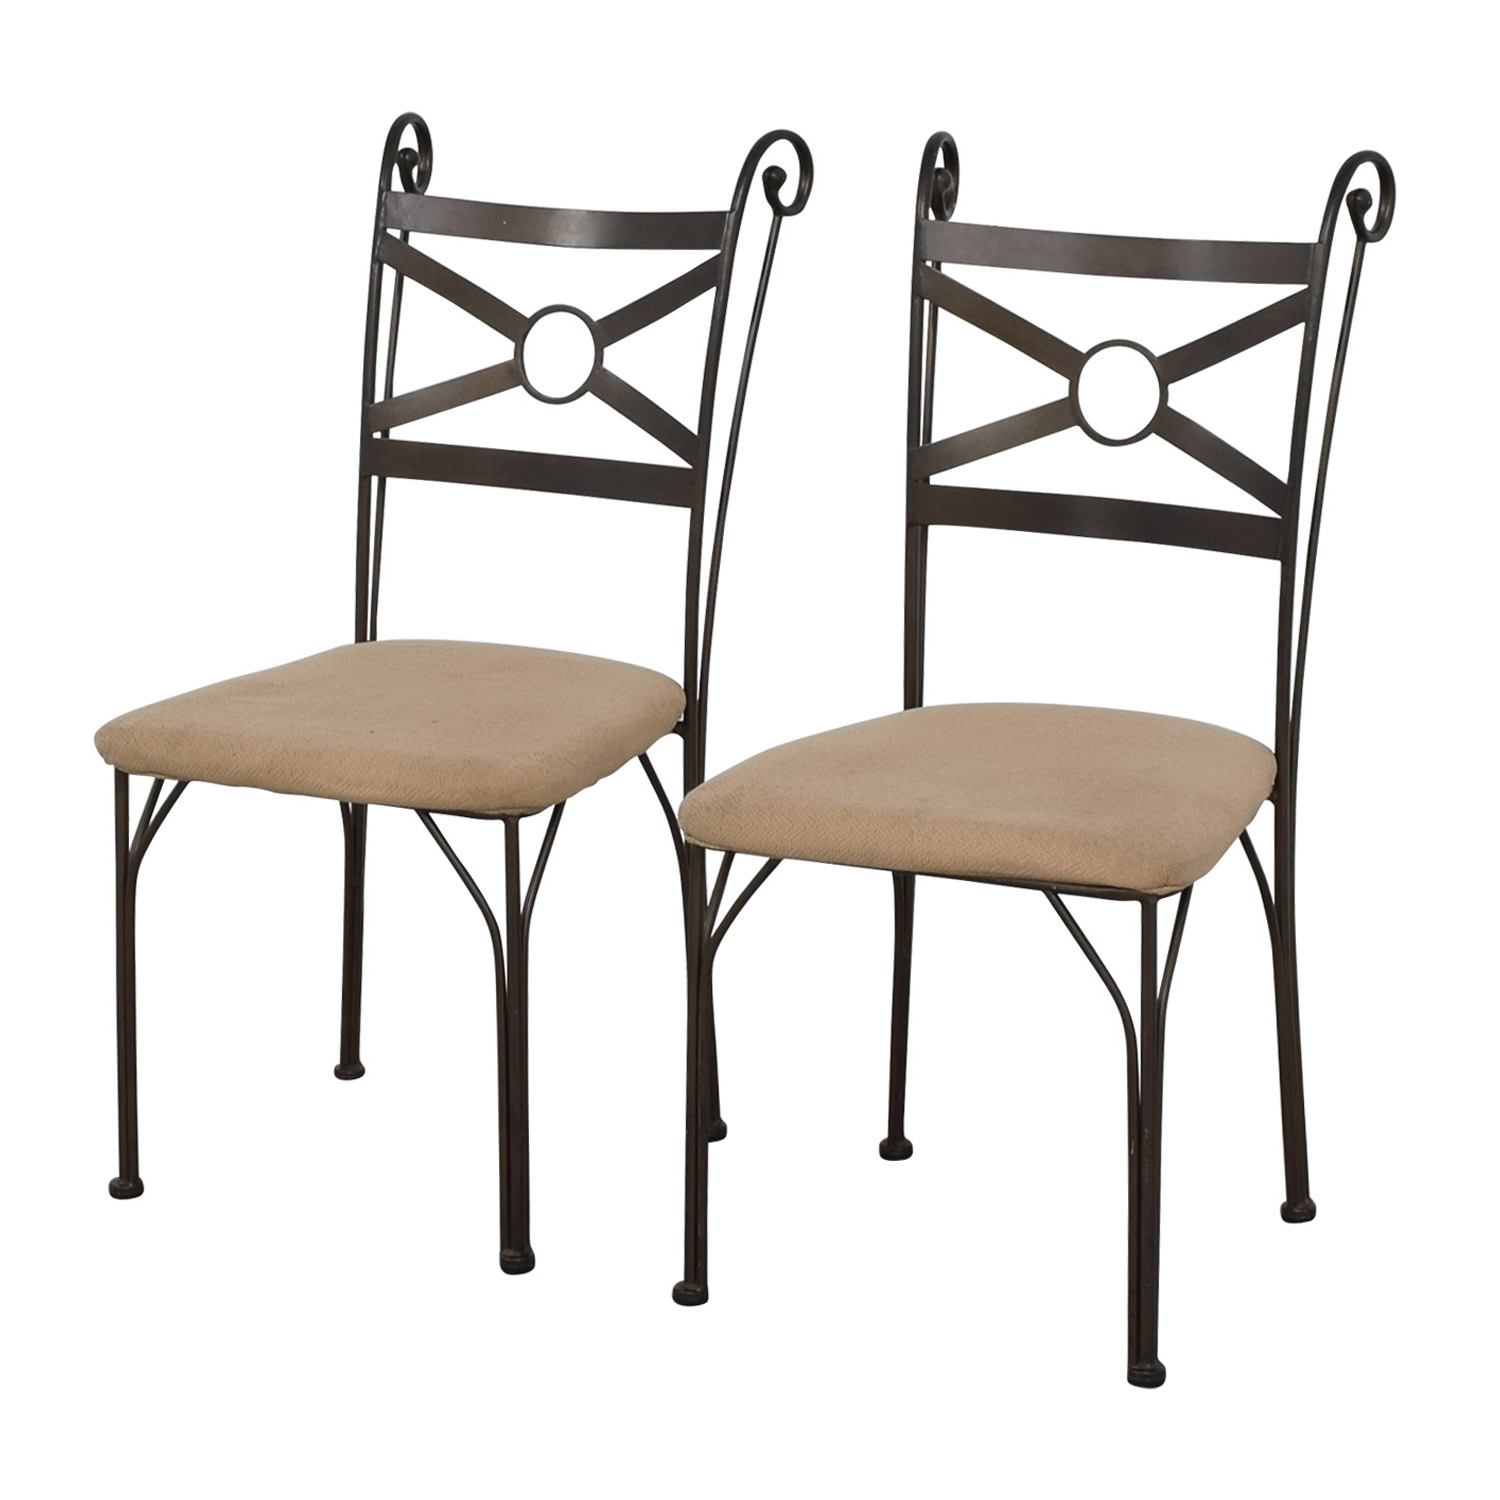 Fabric and Metal Chairs price